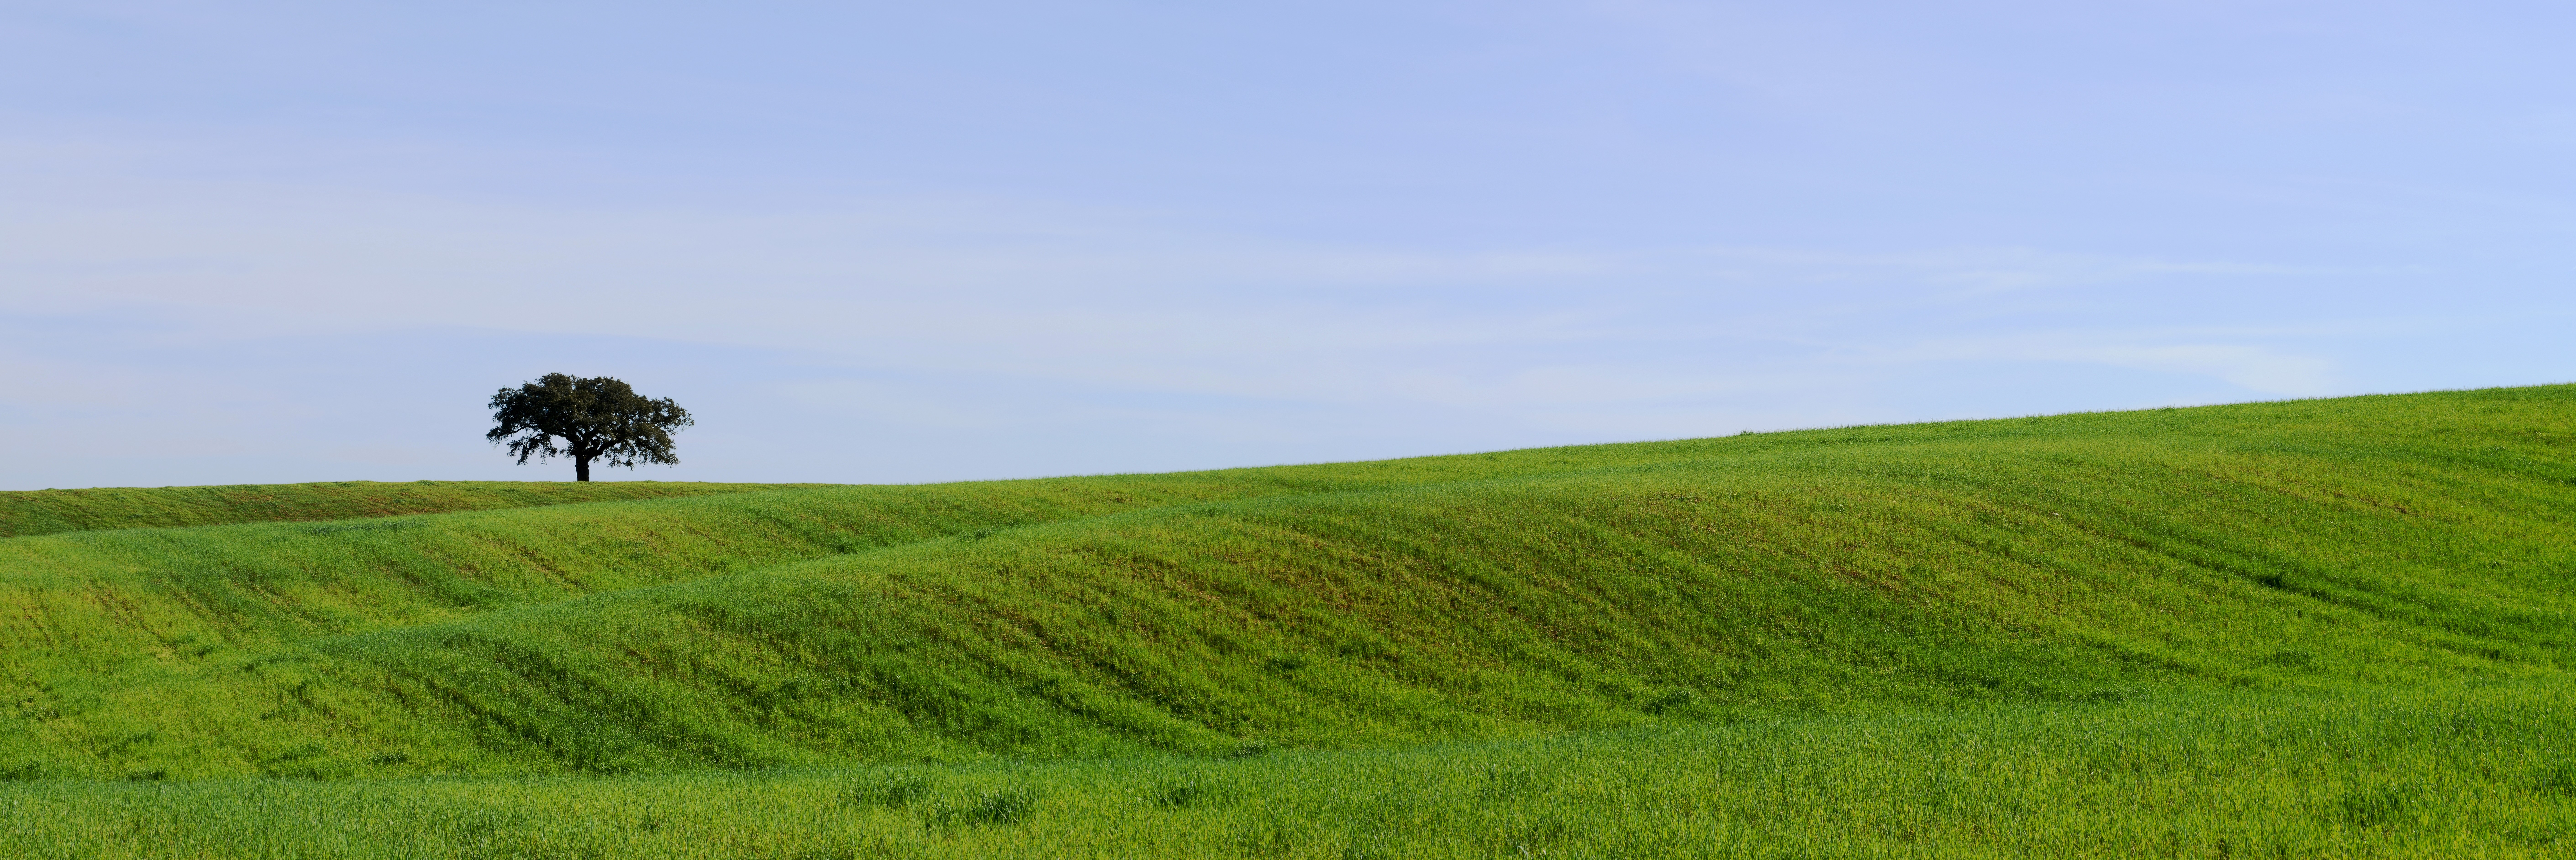 a typical landscape of the rural alentejo region with an undulating wheat field and a solitary suber oak